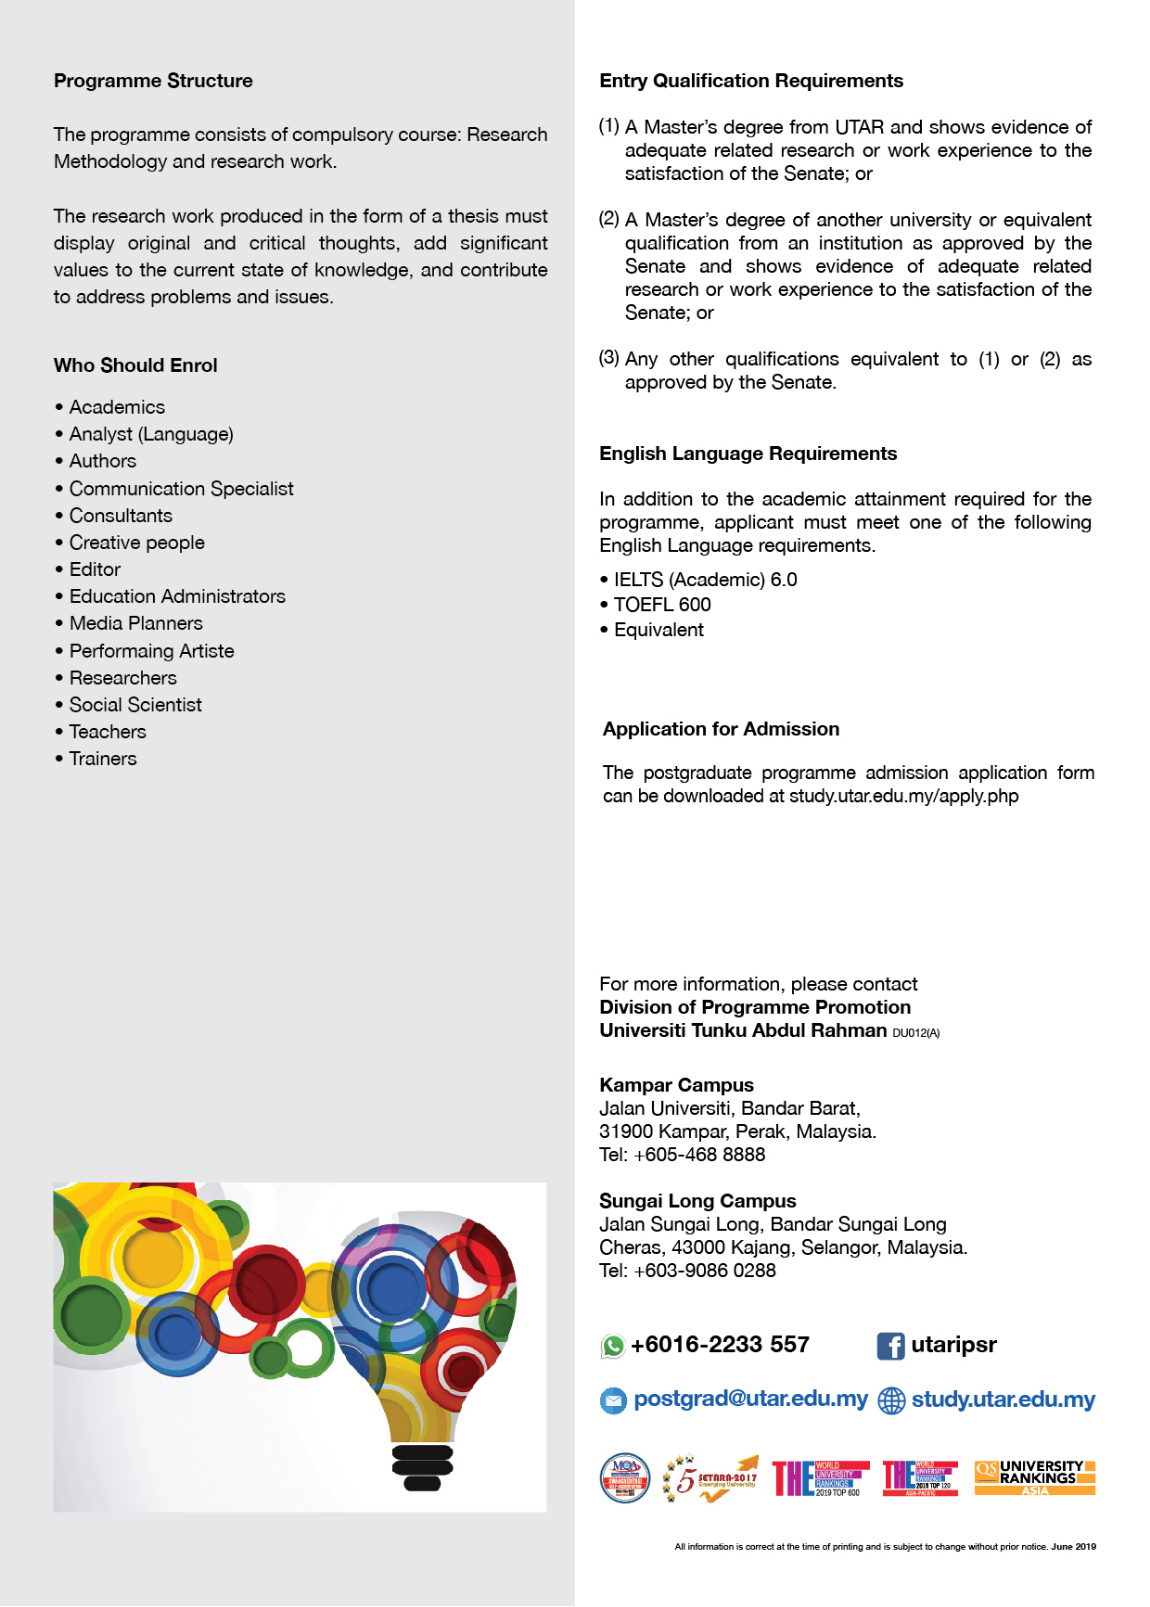 PhD degree in Creative Arts flyer page 2